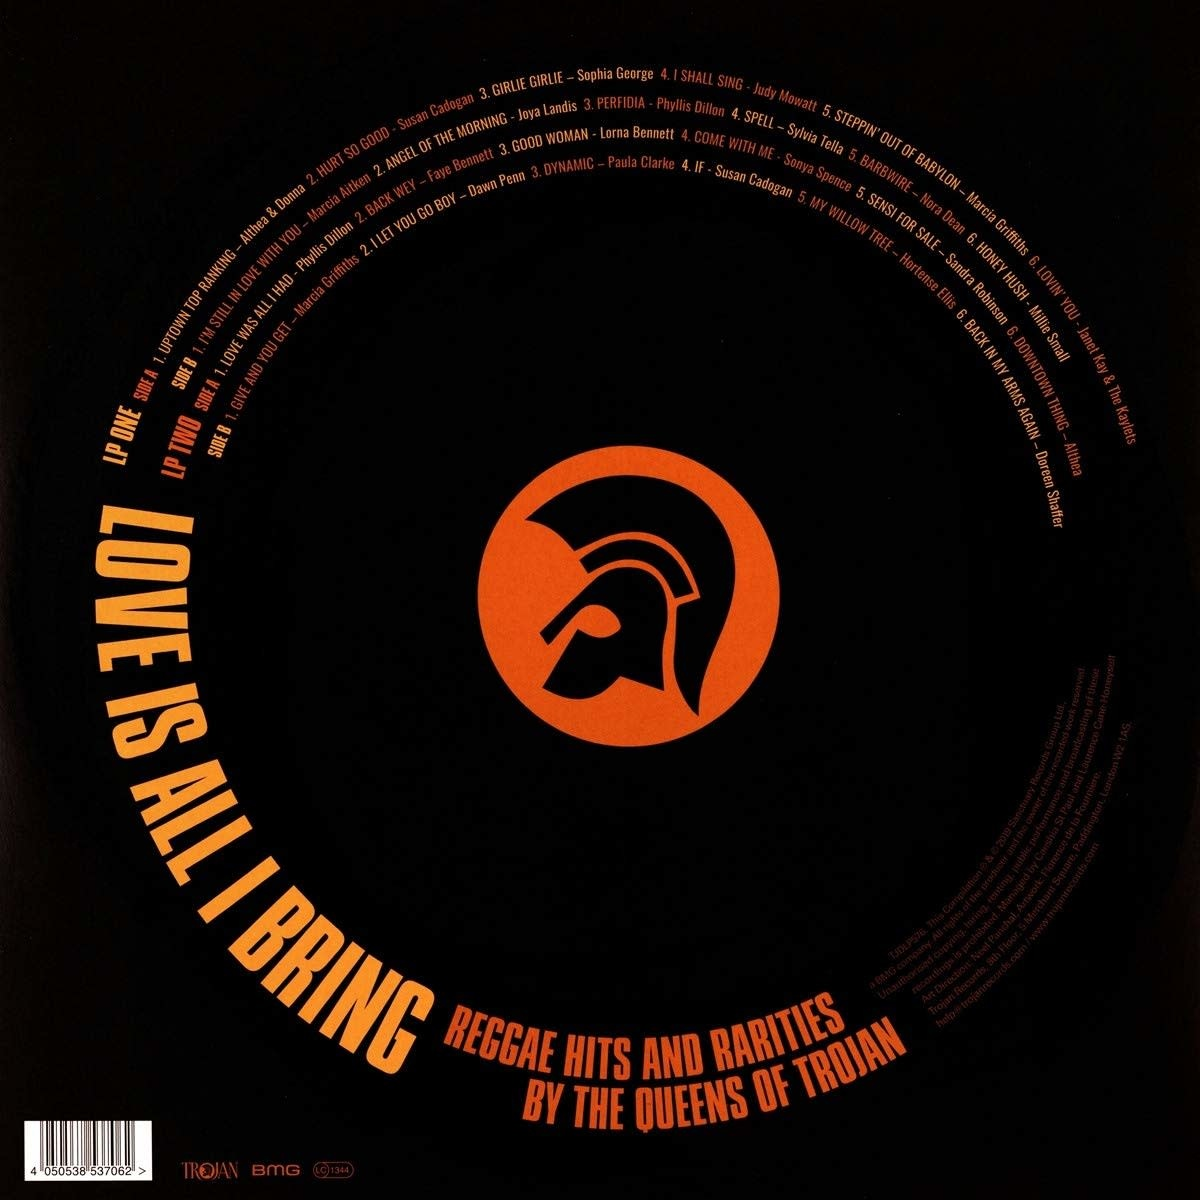 Various - Love Is All I Bring: Reggae Hits And Rarities By The Queens Of Trojan